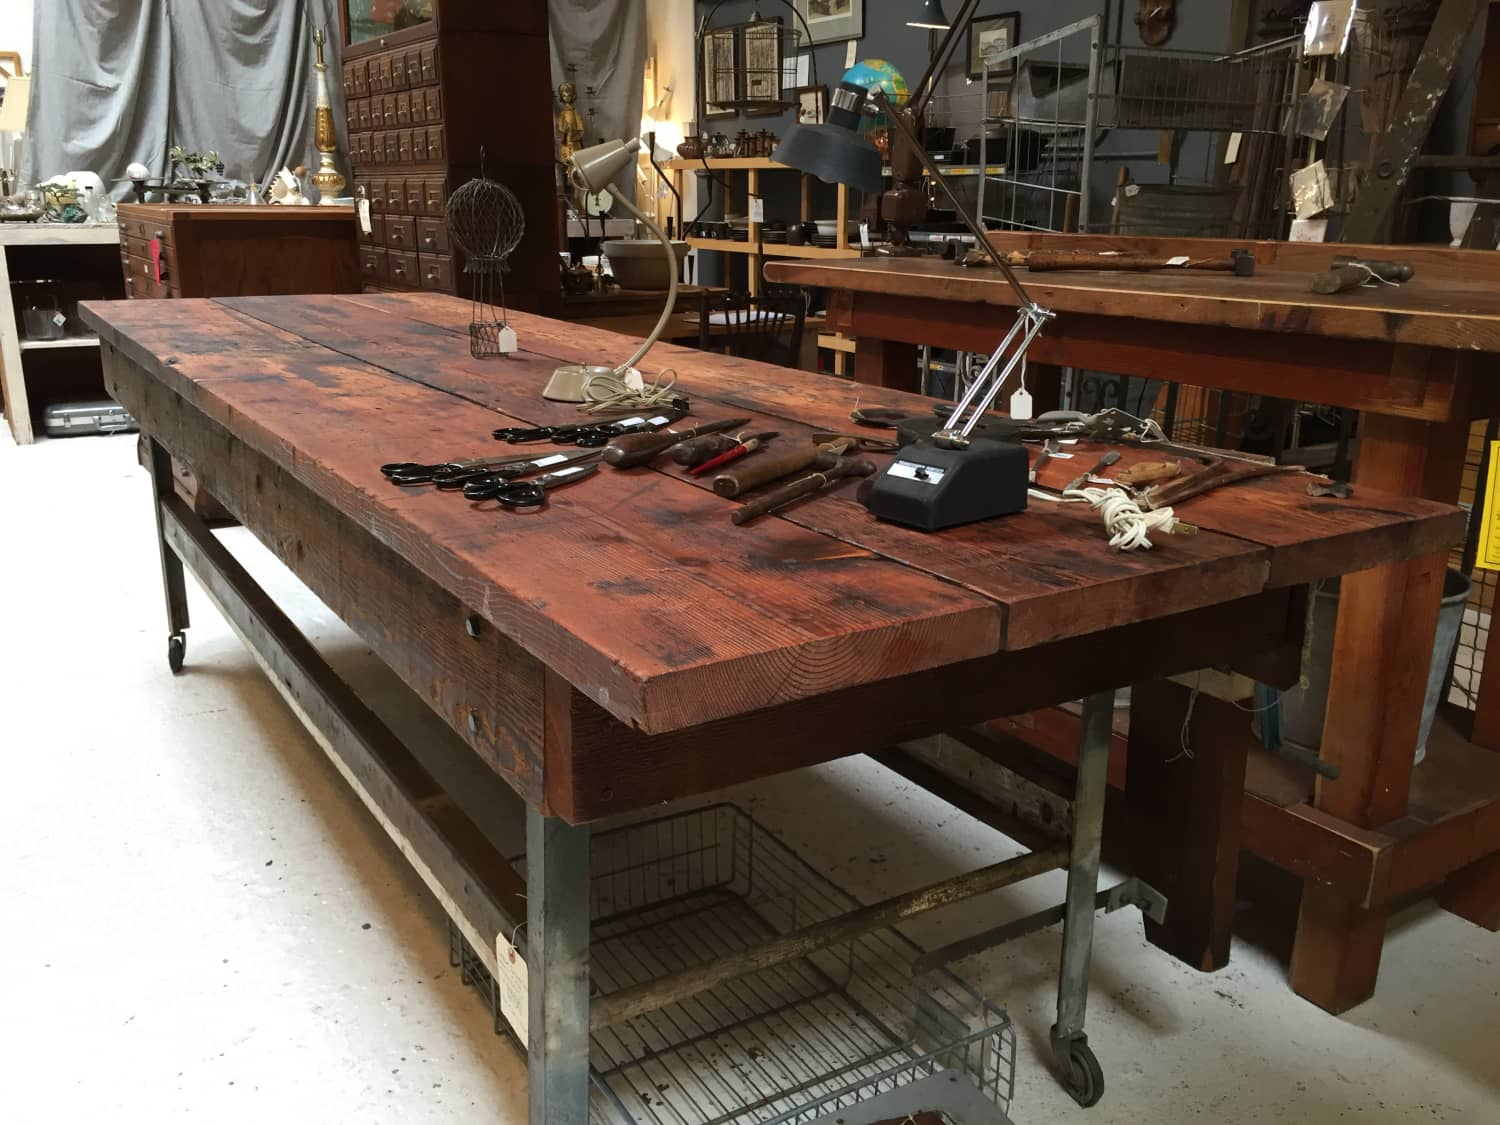 Excellent 9 Foot Industrial Wooden Workbench Work Table Apartment Unemploymentrelief Wooden Chair Designs For Living Room Unemploymentrelieforg